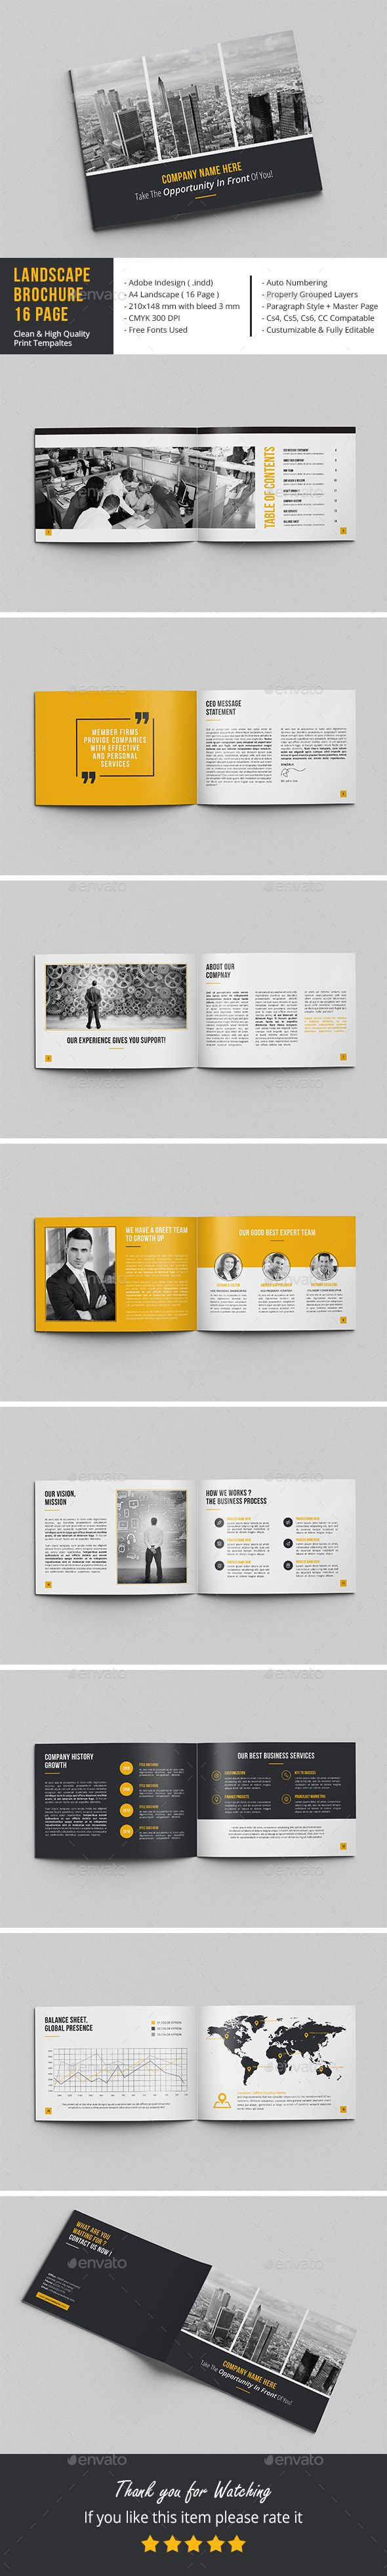 Landscape Brochure Design Template 16 Page - Corporate Brochure Template InDesign INDD. Download here: https://graphicriver.net/item/landscape-brochure-16-page/16950438?s_rank=13&ref=yinkira